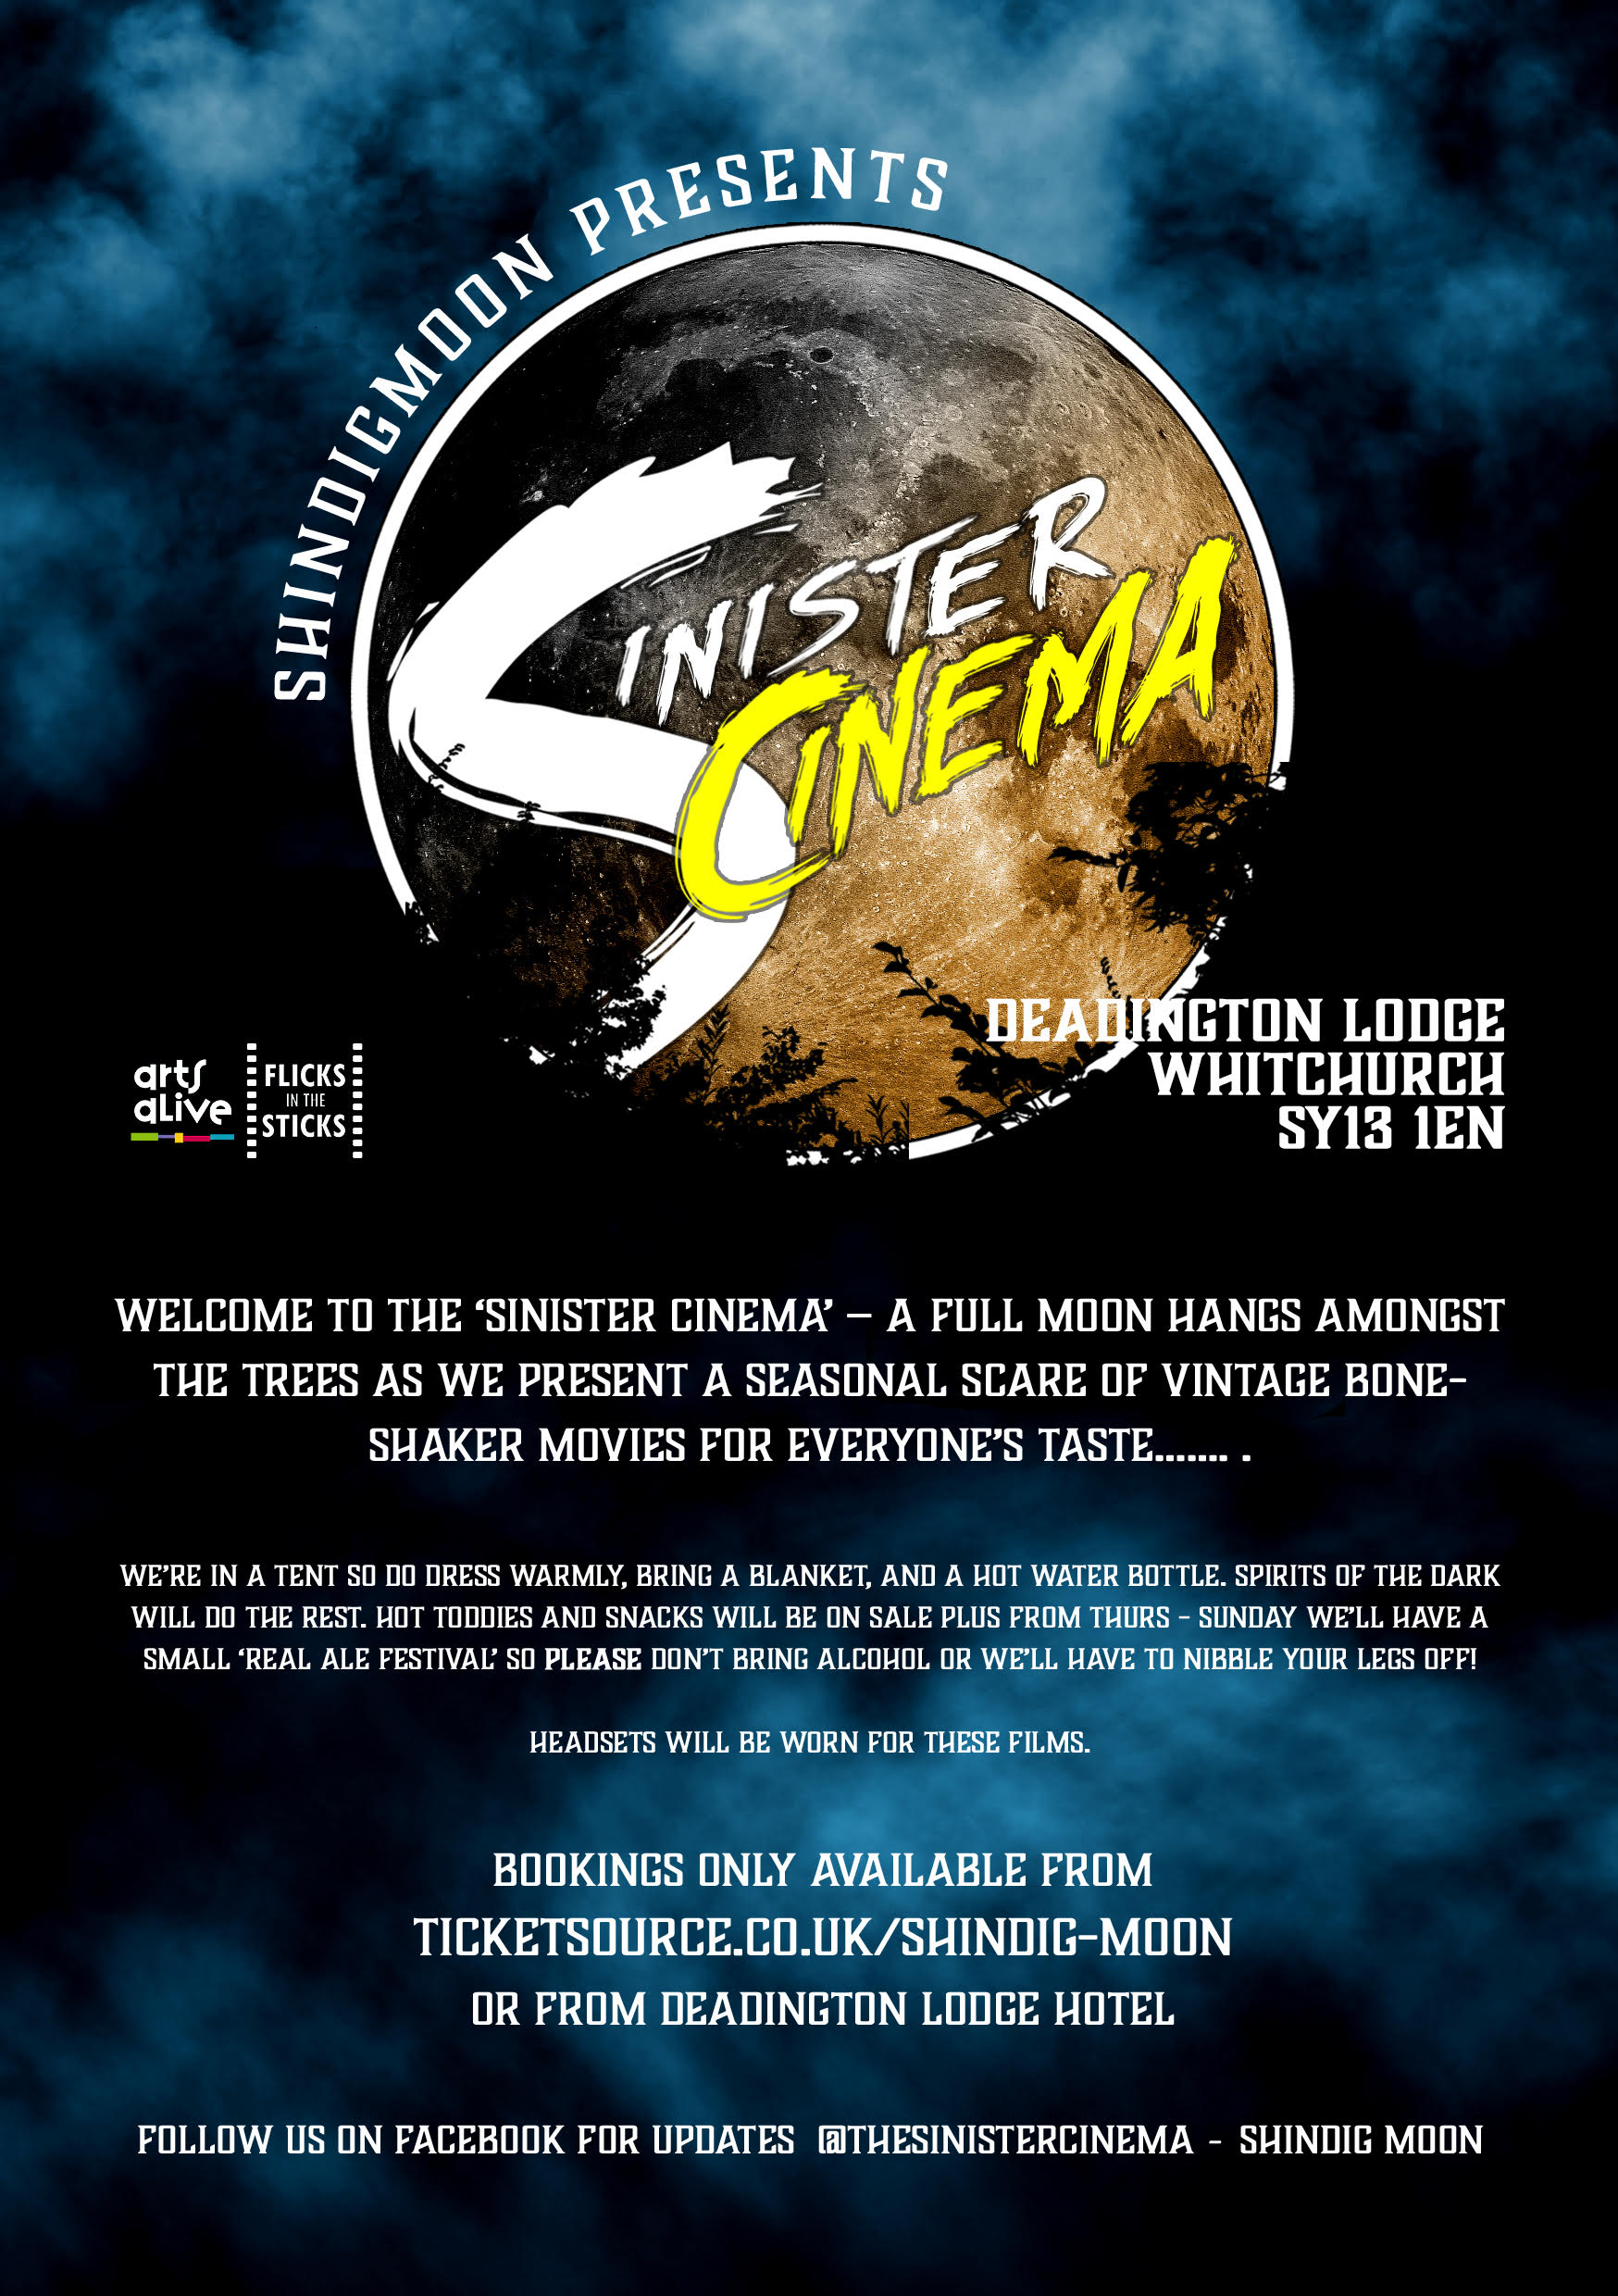 The Sinister Cinema Thursday 29th October to Sunday 1st November